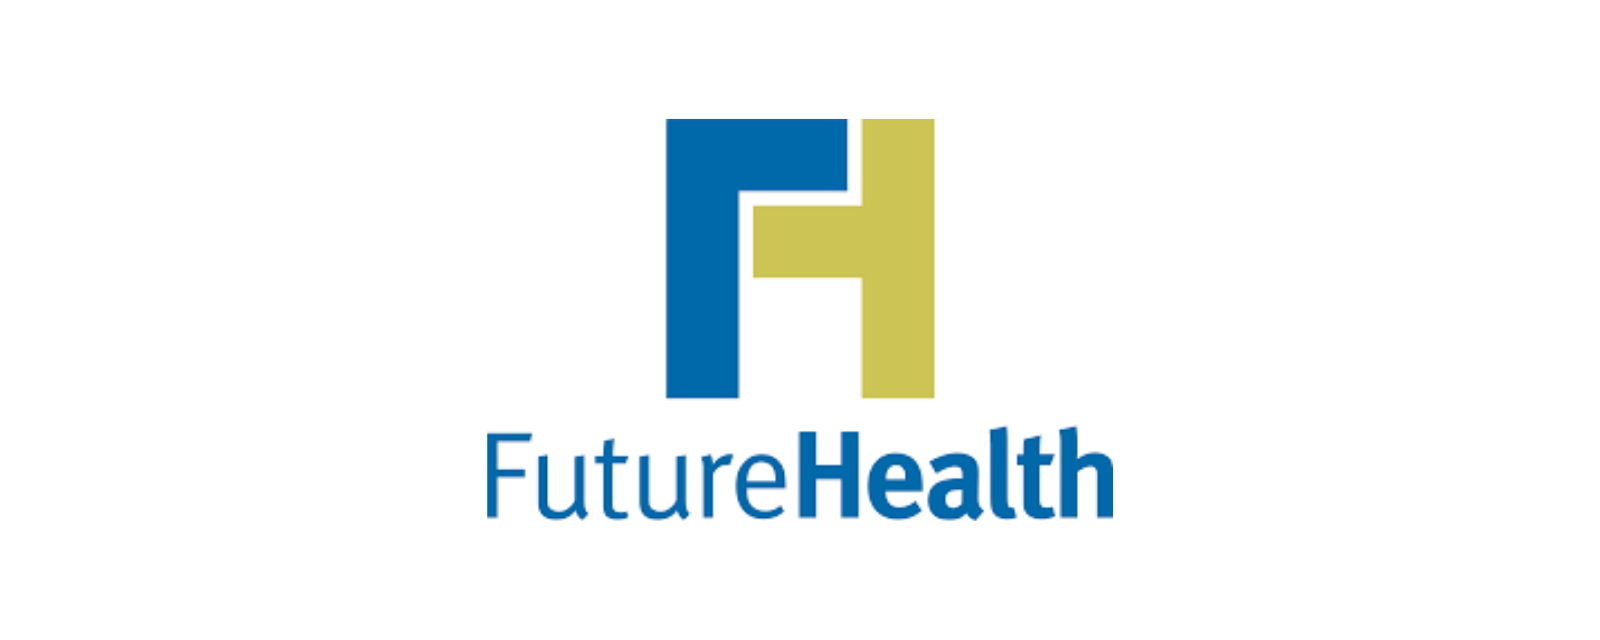 FutureHealth Logo